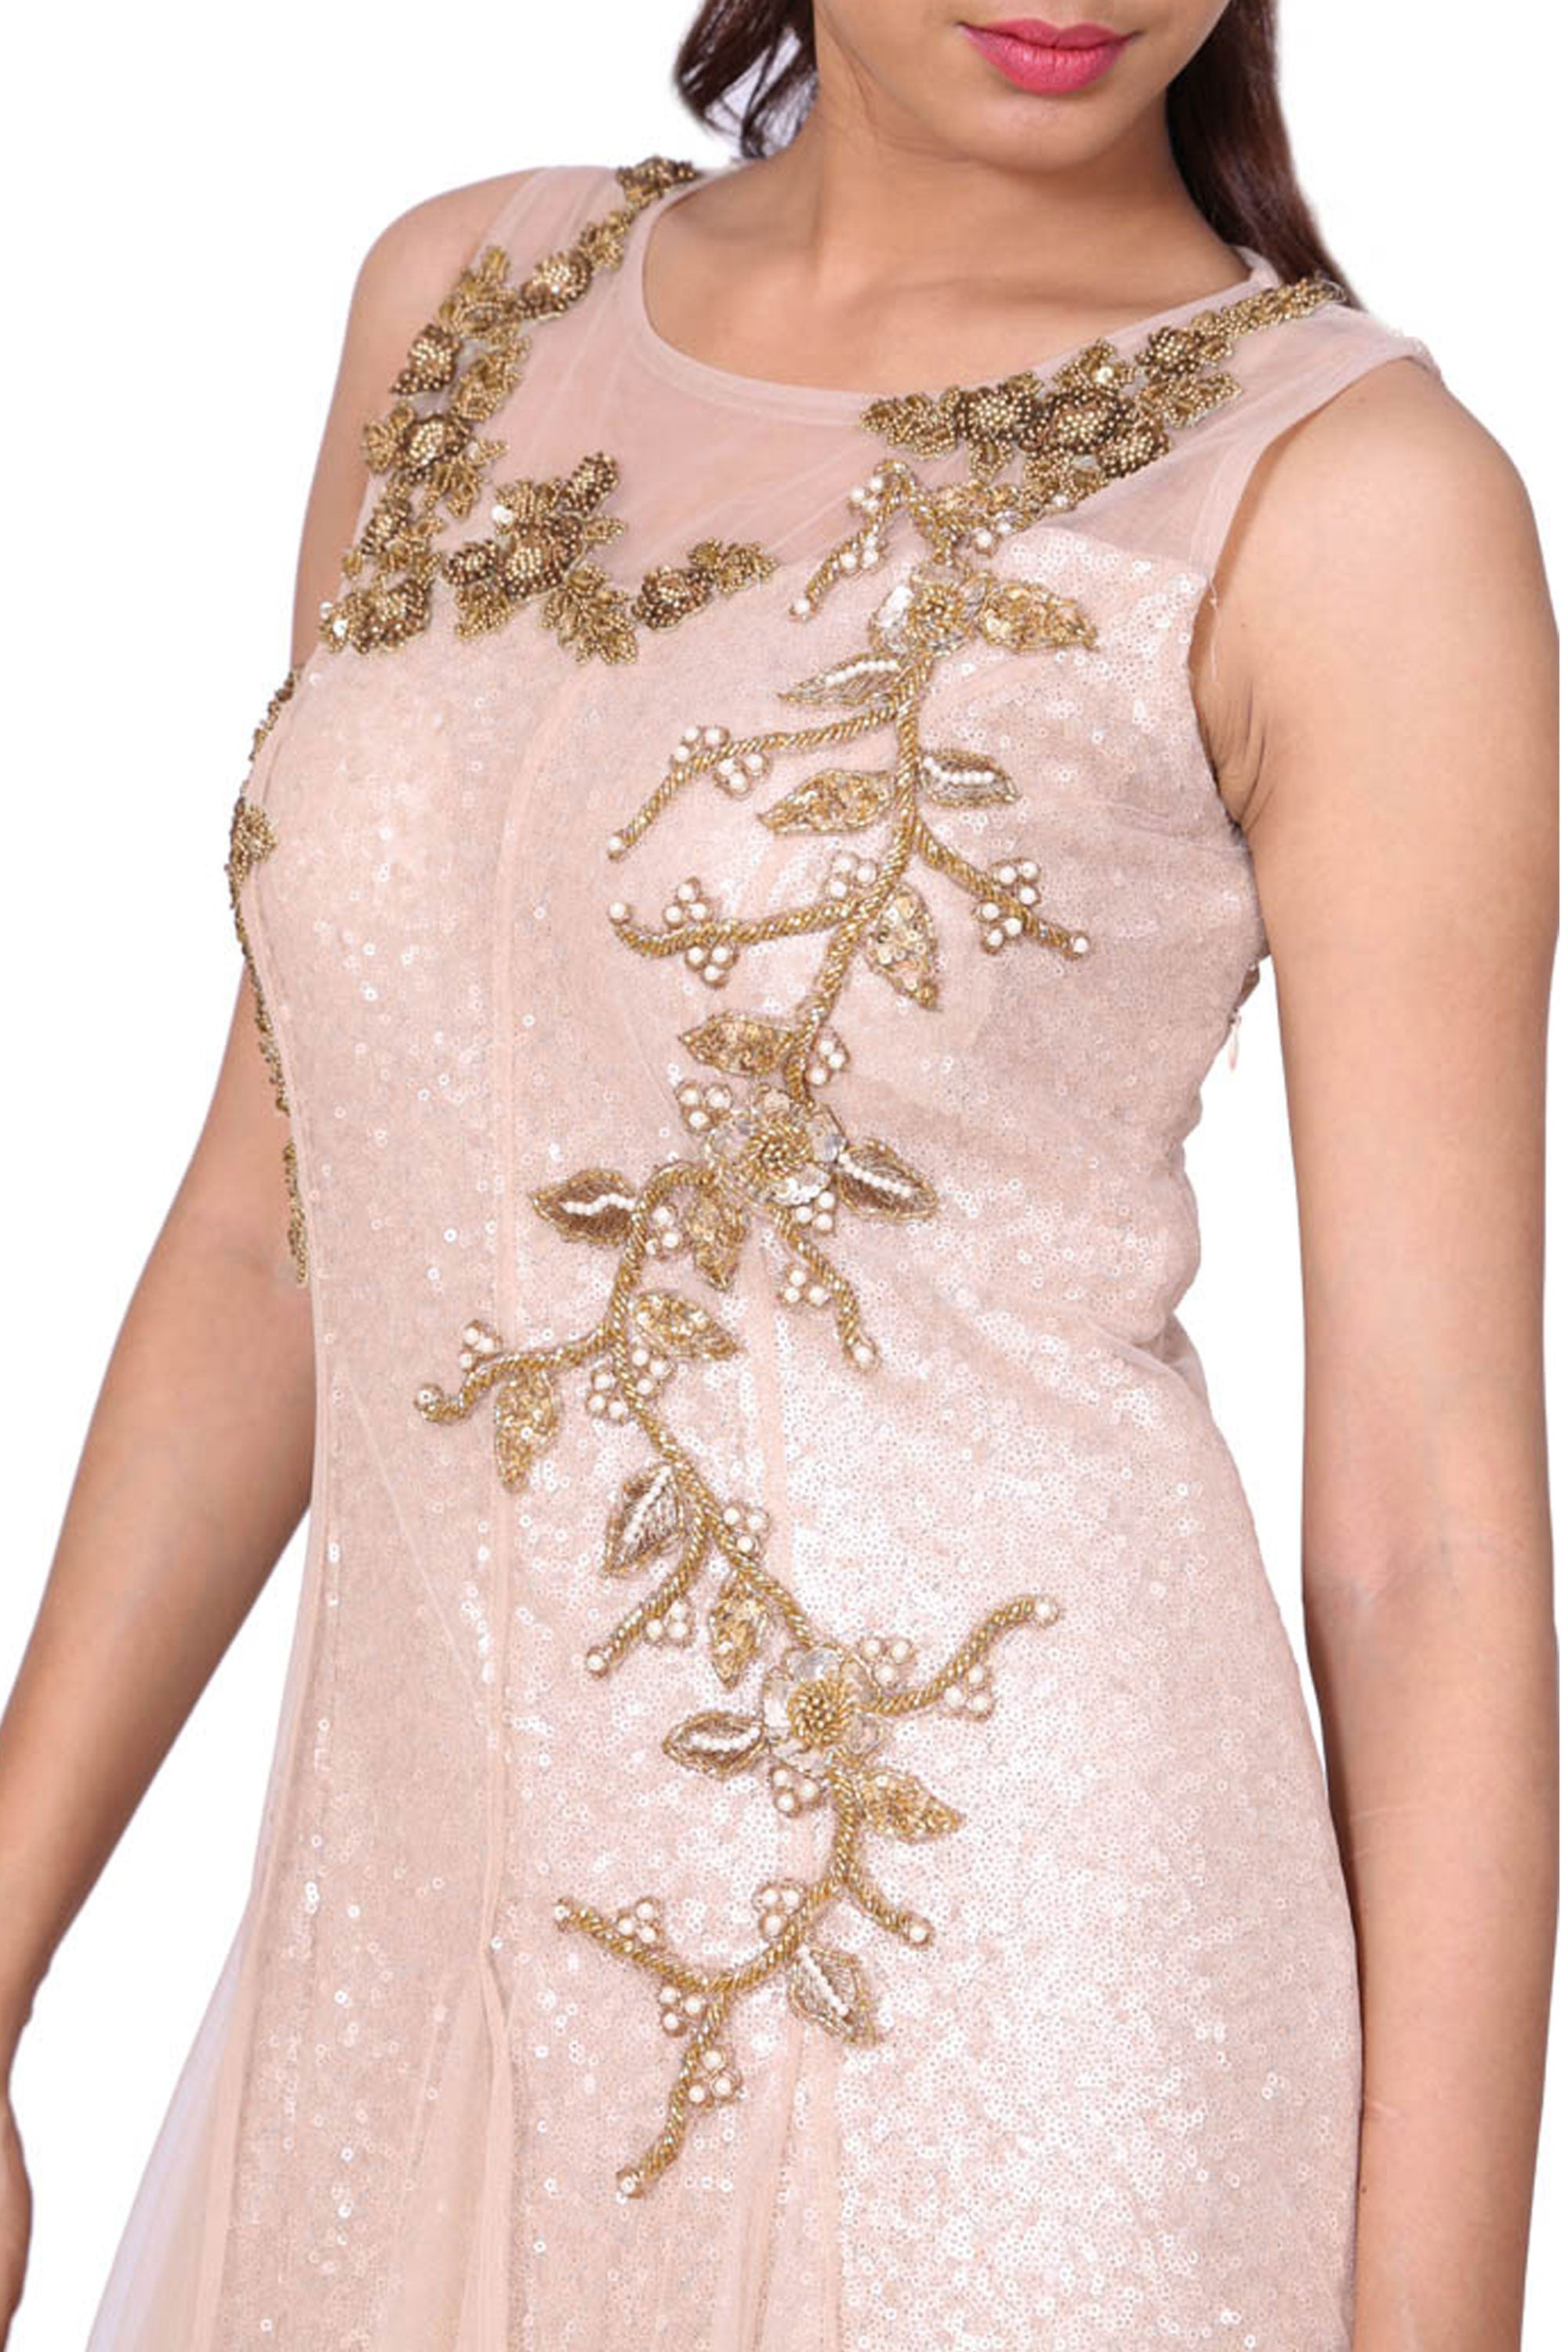 Beige Evening Gown With Gold-Moti Embroidery Closeup